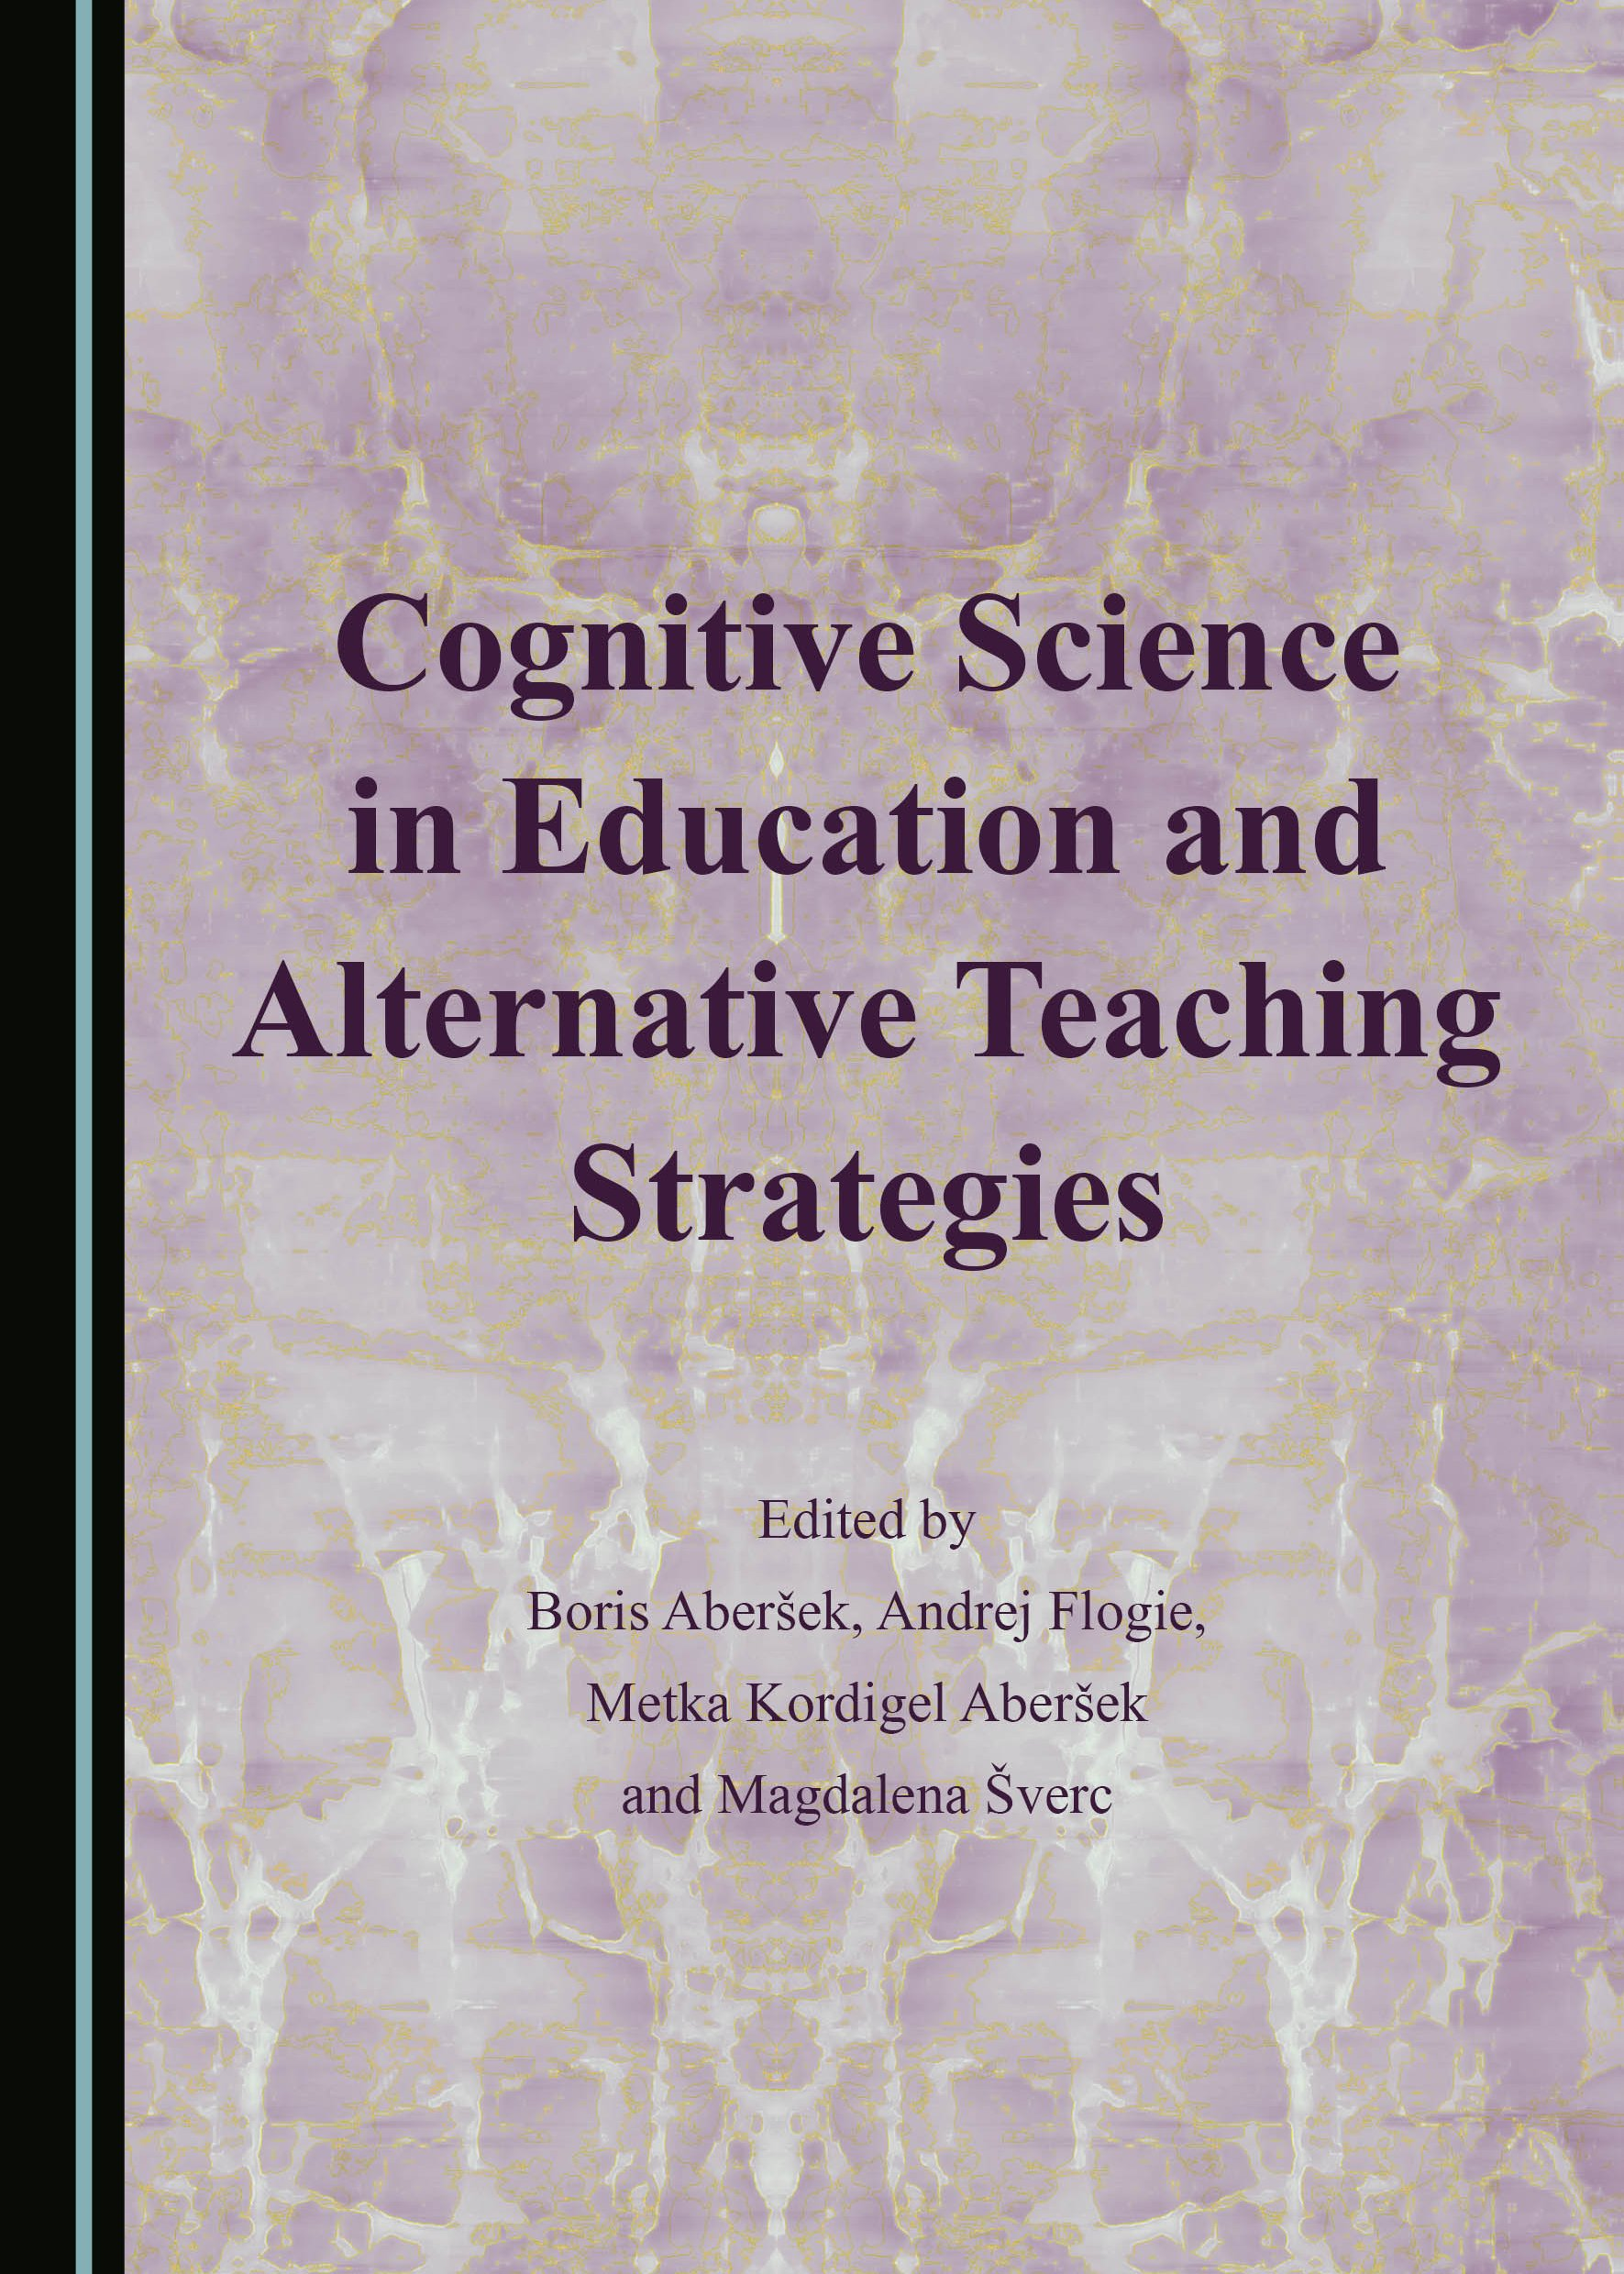 Cognitive Science in Education and Alternative Teaching Strategies